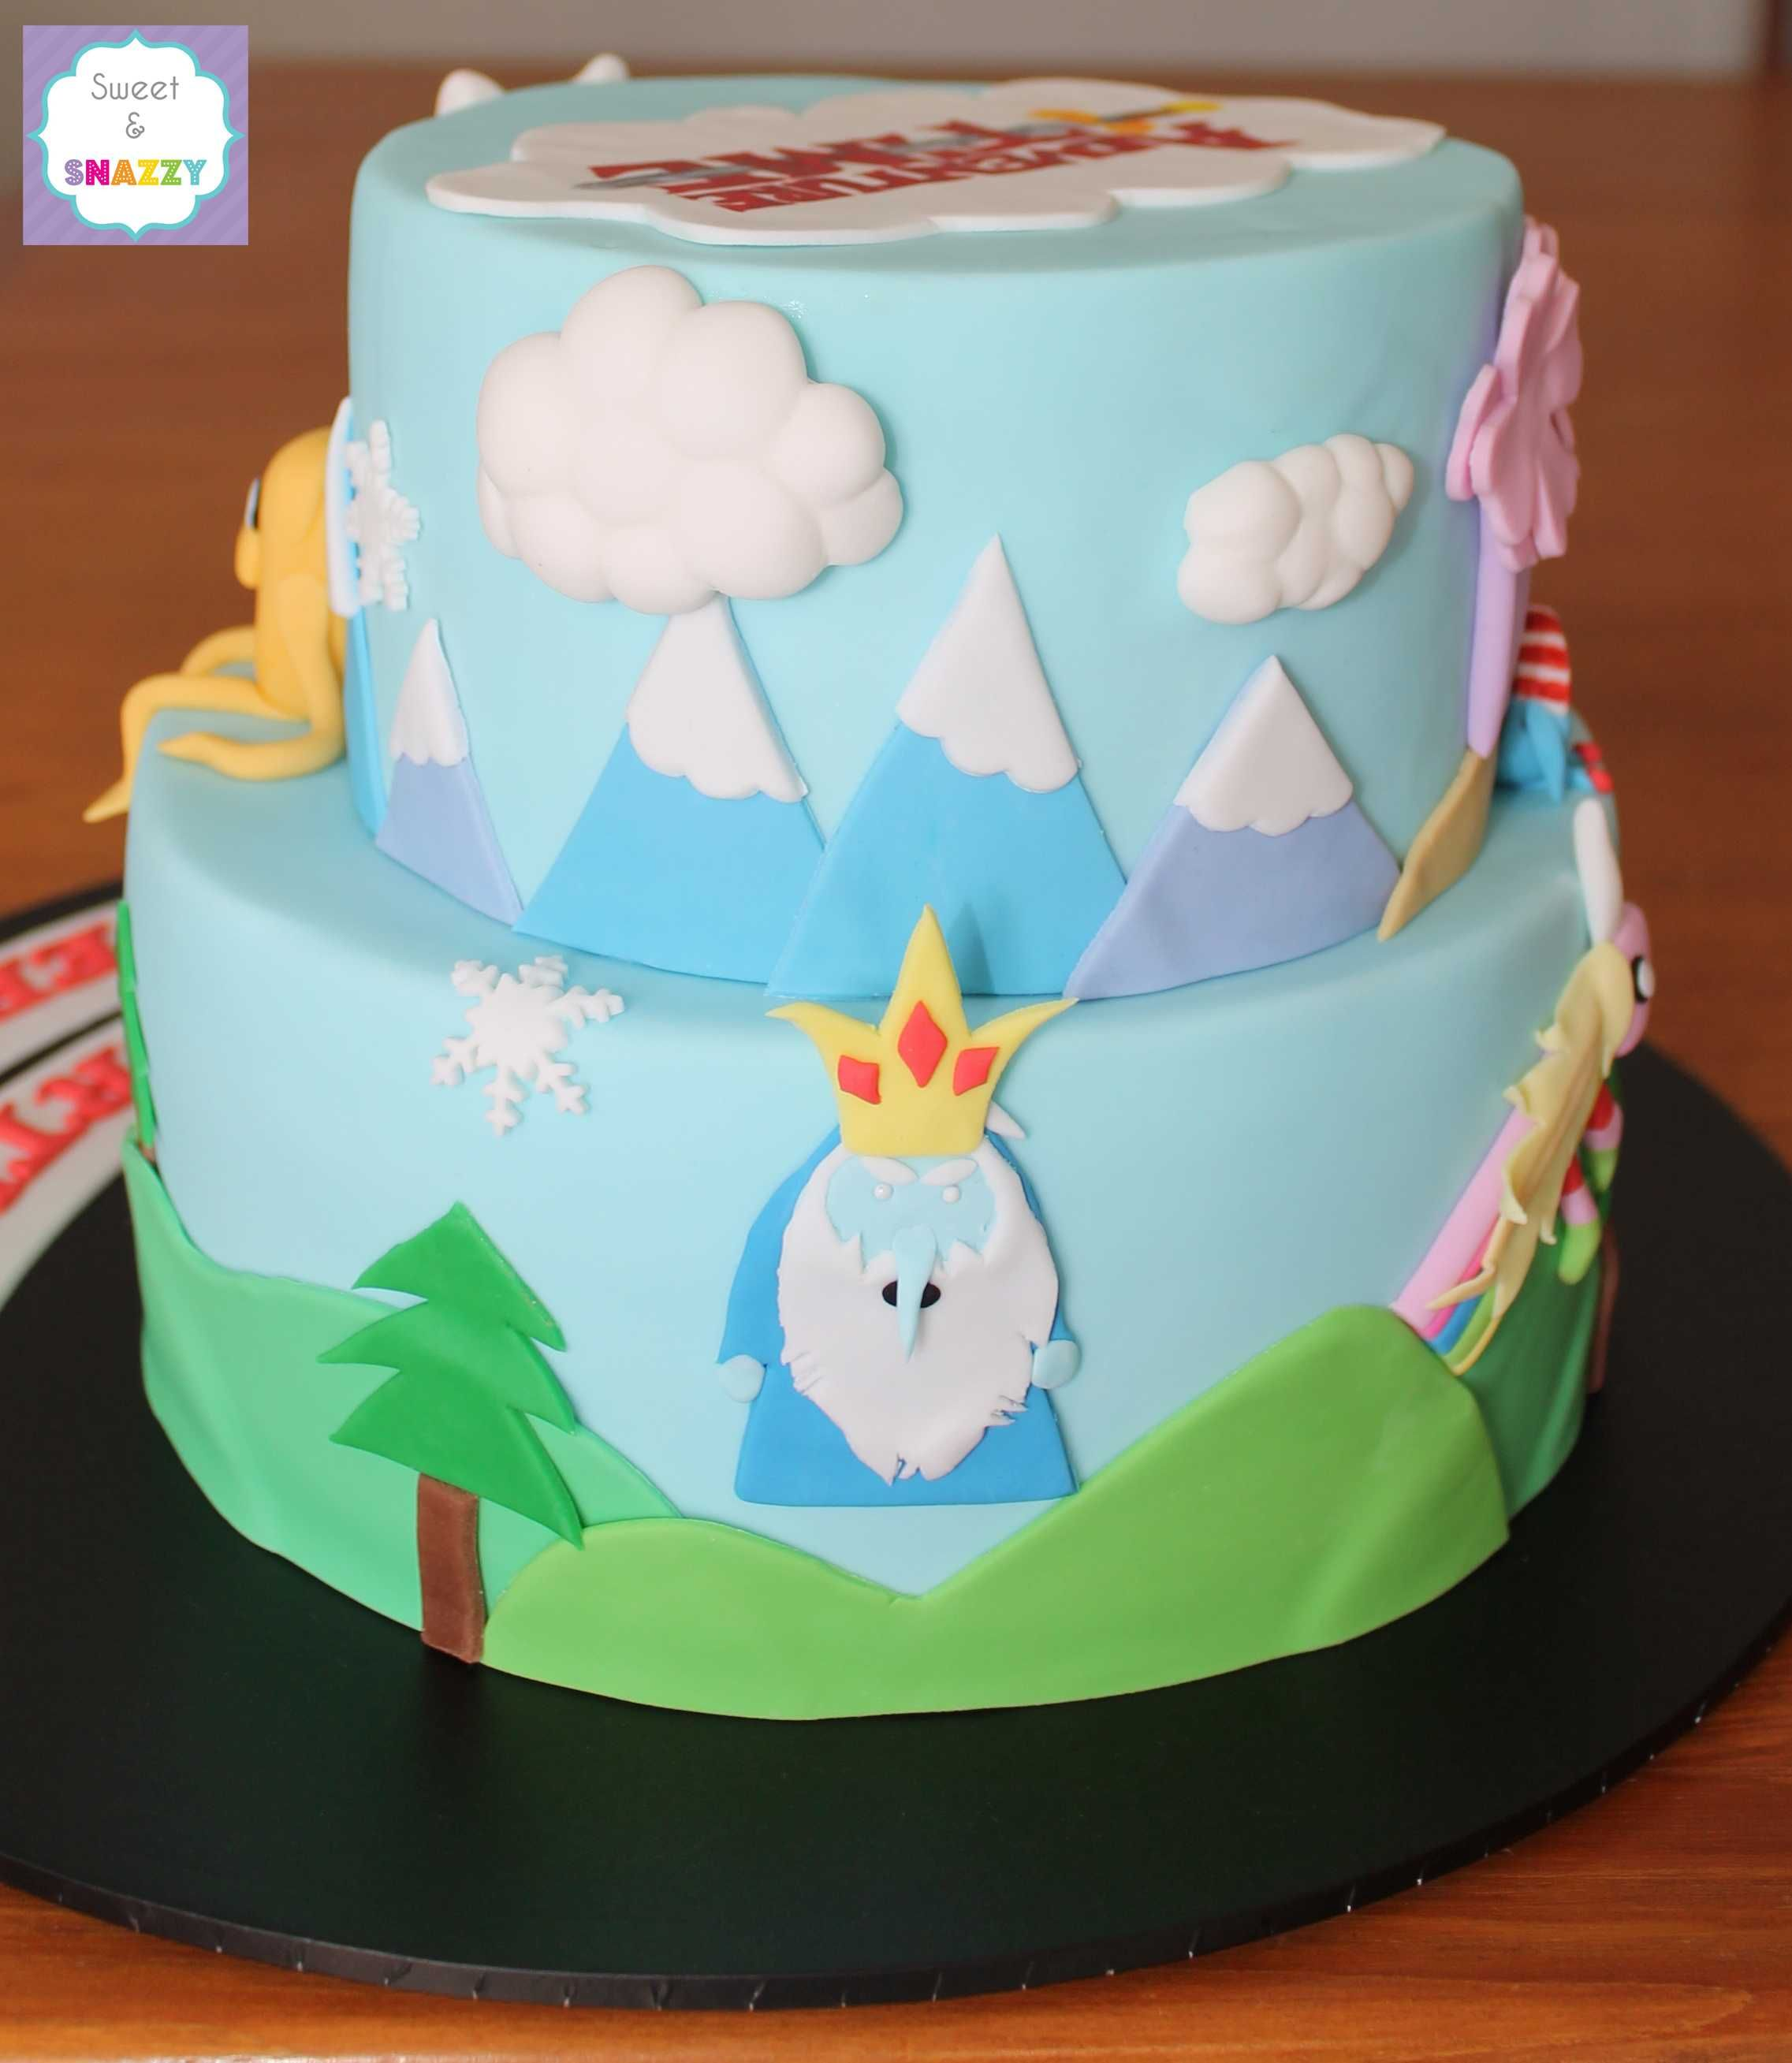 Adventure Time Cake By Sweet Snazzy Side View Httpswww